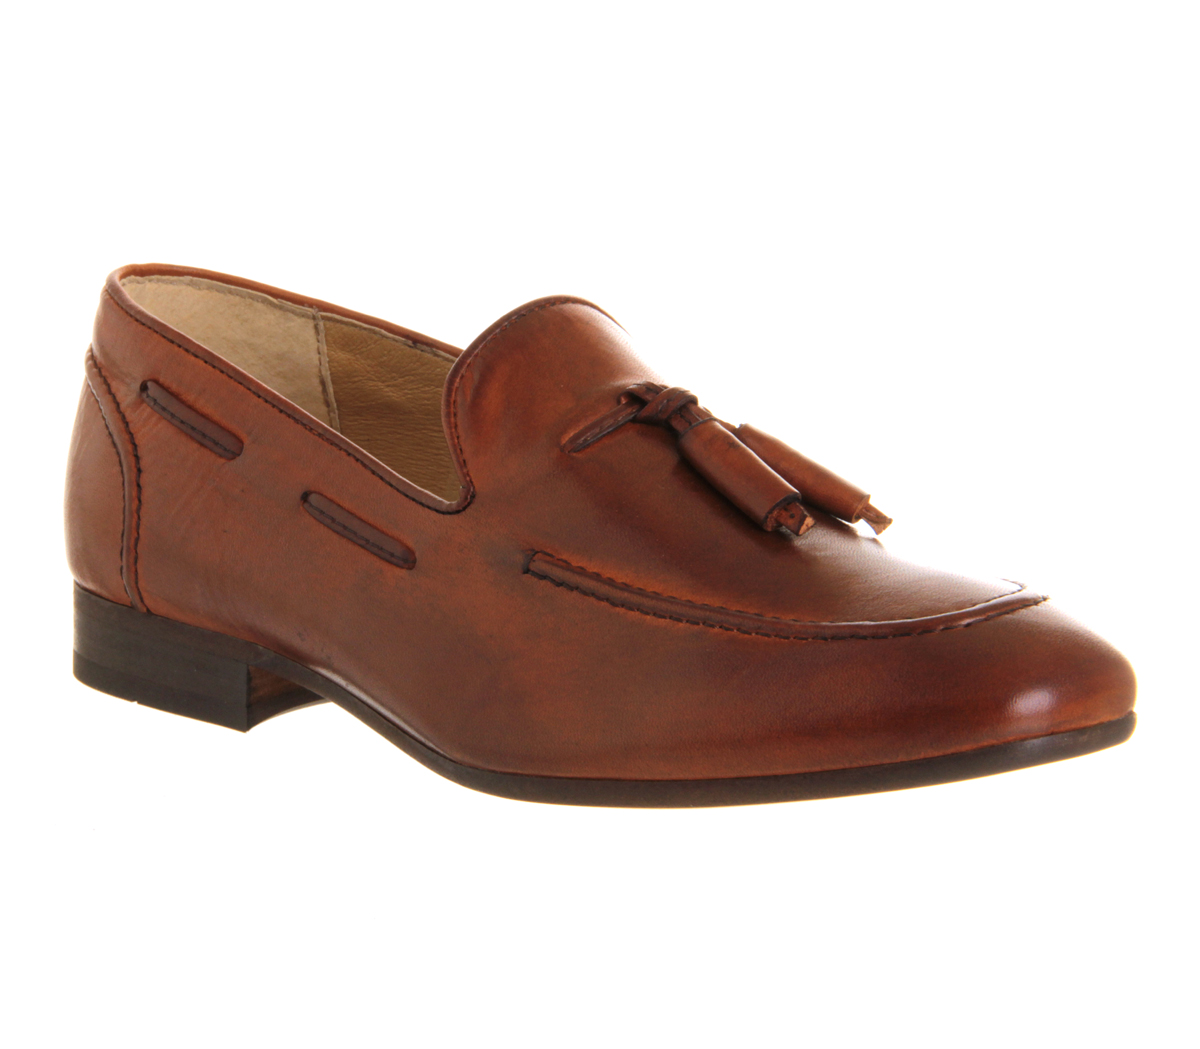 mens h by hudson piere loafer leather formal shoes ebay